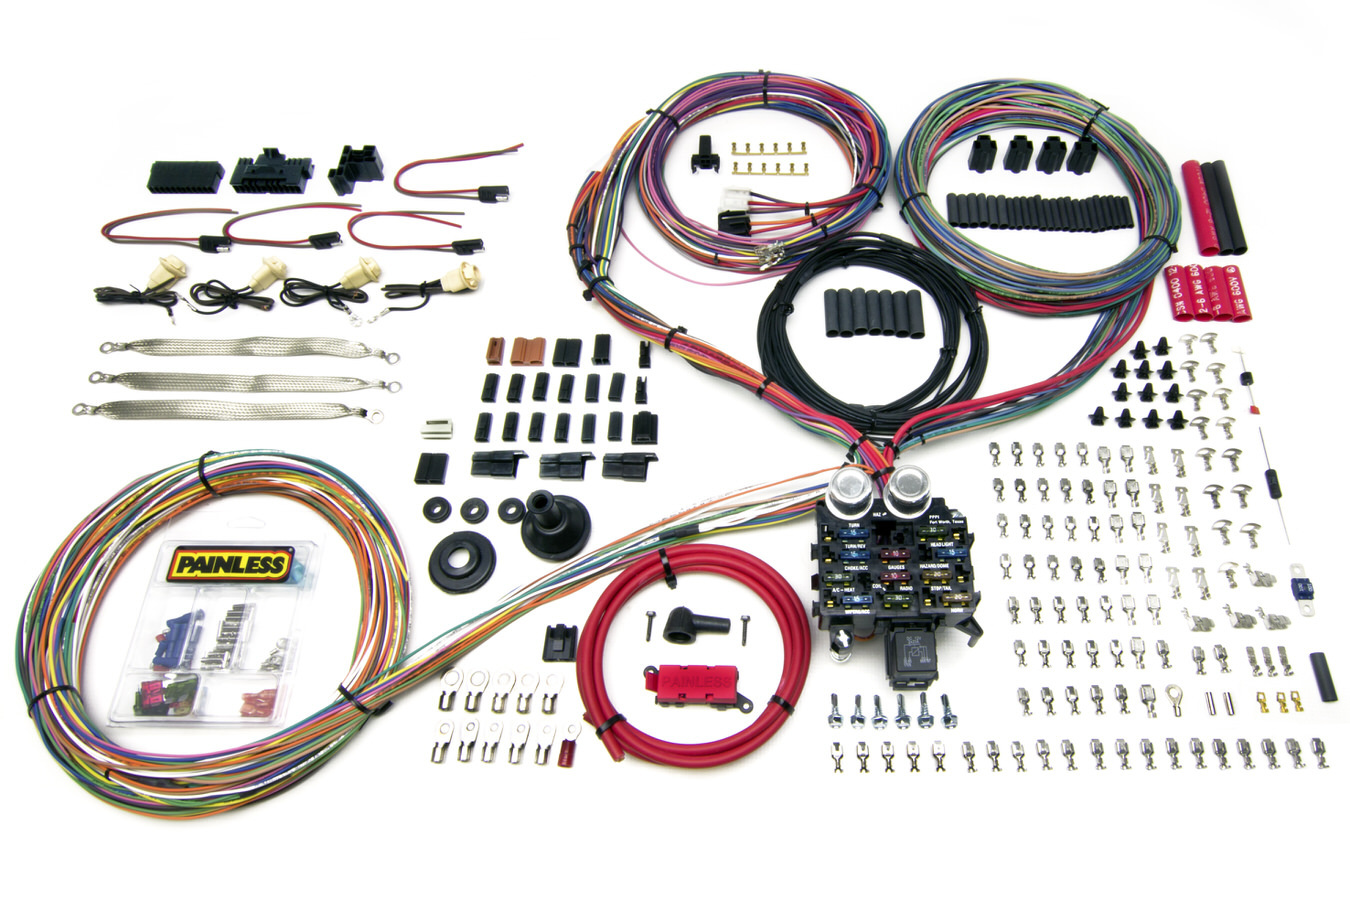 Painless Wiring 10402 Car Wiring Harness, Pro Series, Customizable, 23 Circuit, Grommet Firewall Pass-Through, In Dash Key, GM, Kit